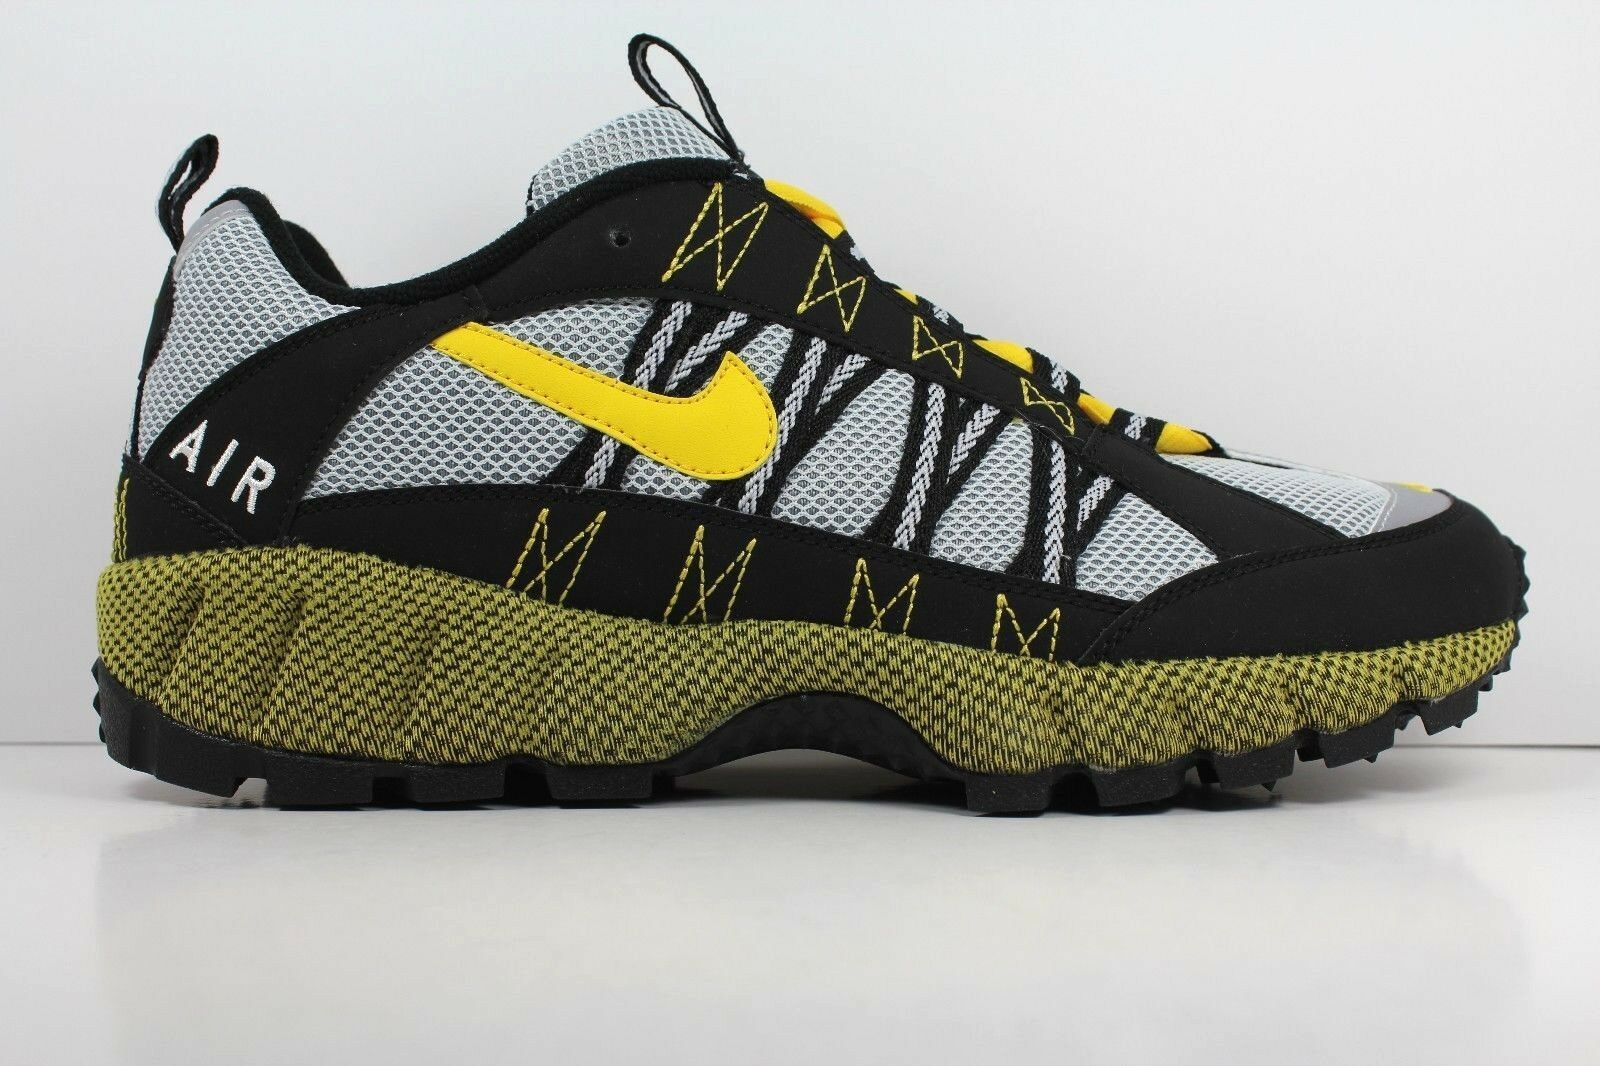 Nike Air Humara '17 Varsity Maize-Wolf Grey/Black Mens Shoes Size 9.5